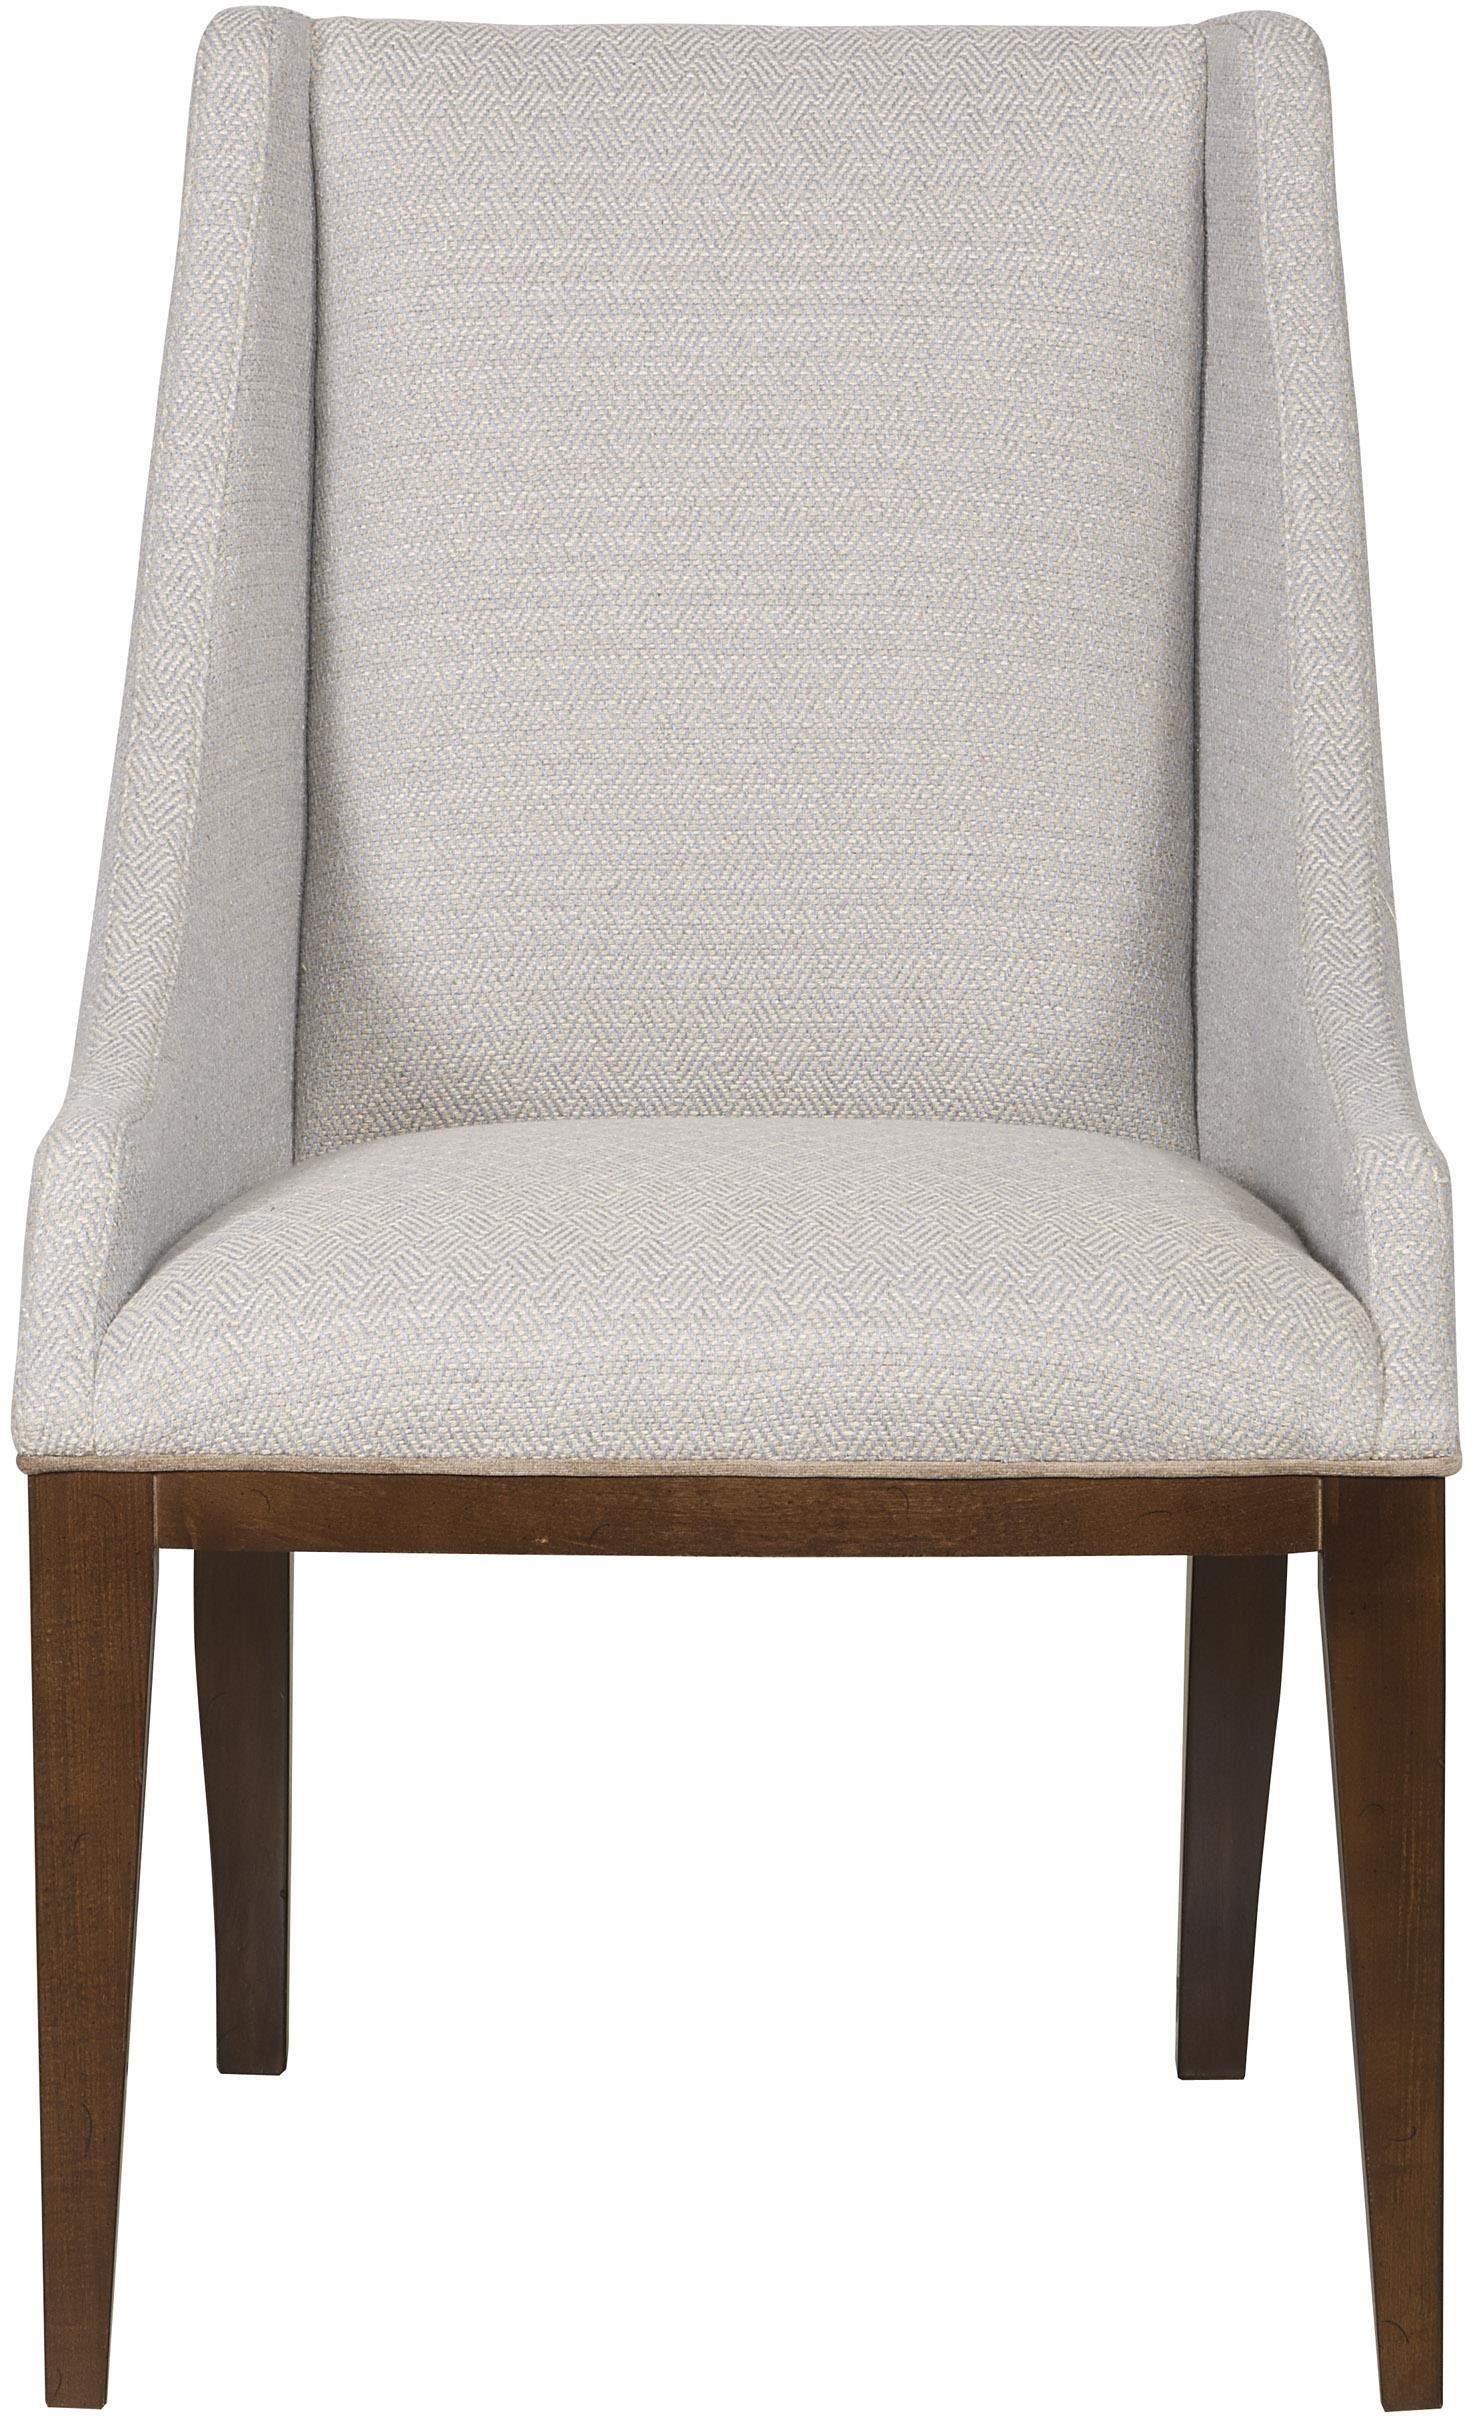 Vanguard Furniture Thom Filicia Home CollectionIthaca Dining Arm Chair ...